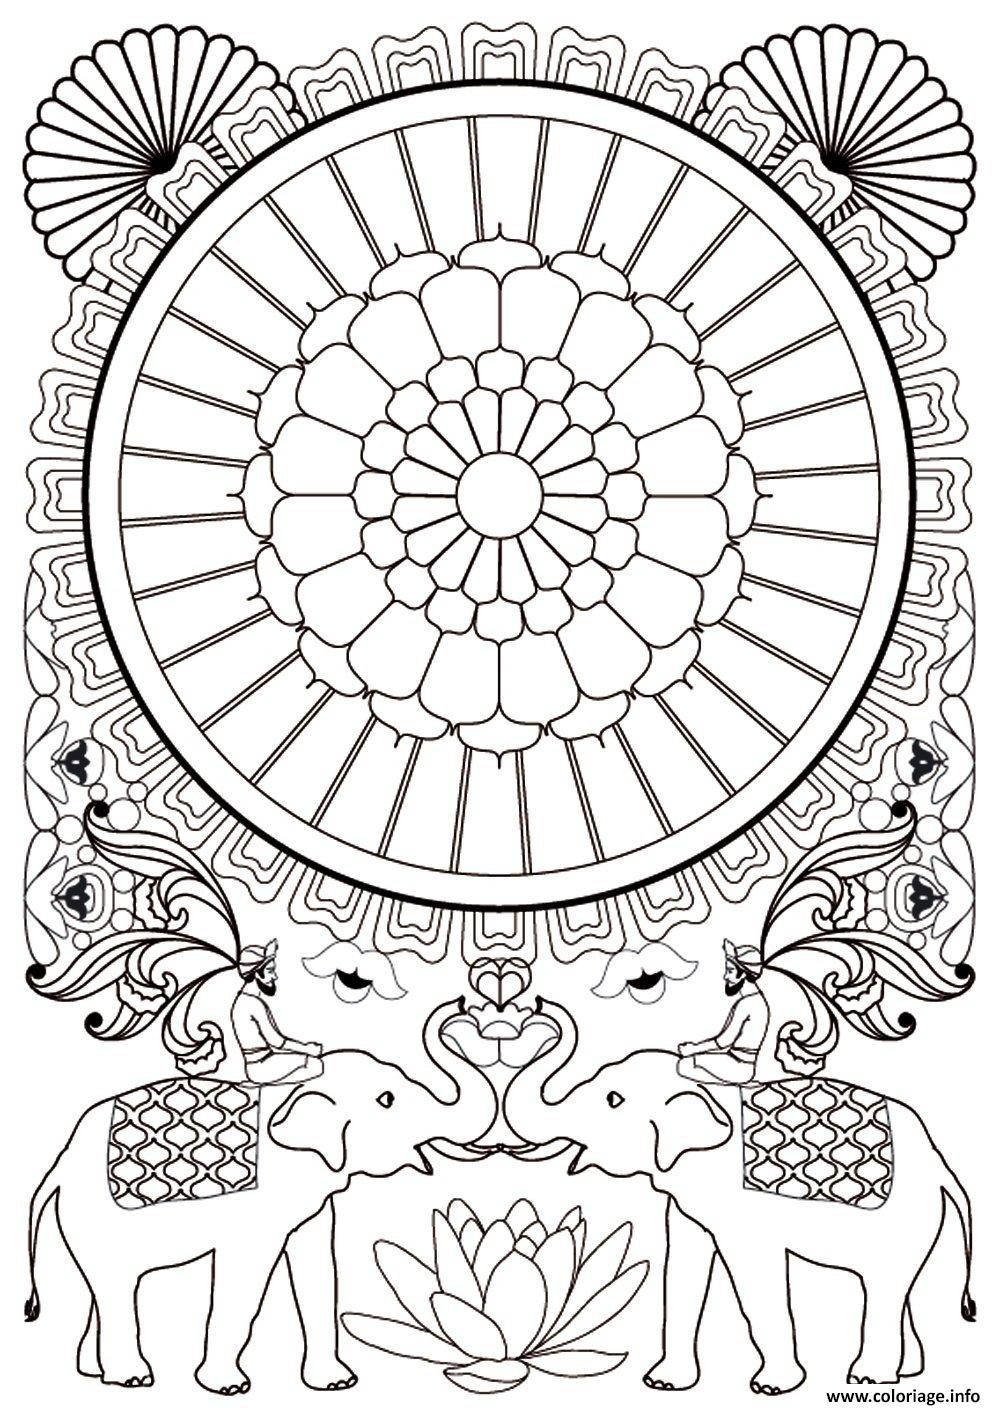 Coloriage art therapie 97 dessin - Coloriage therapie ...